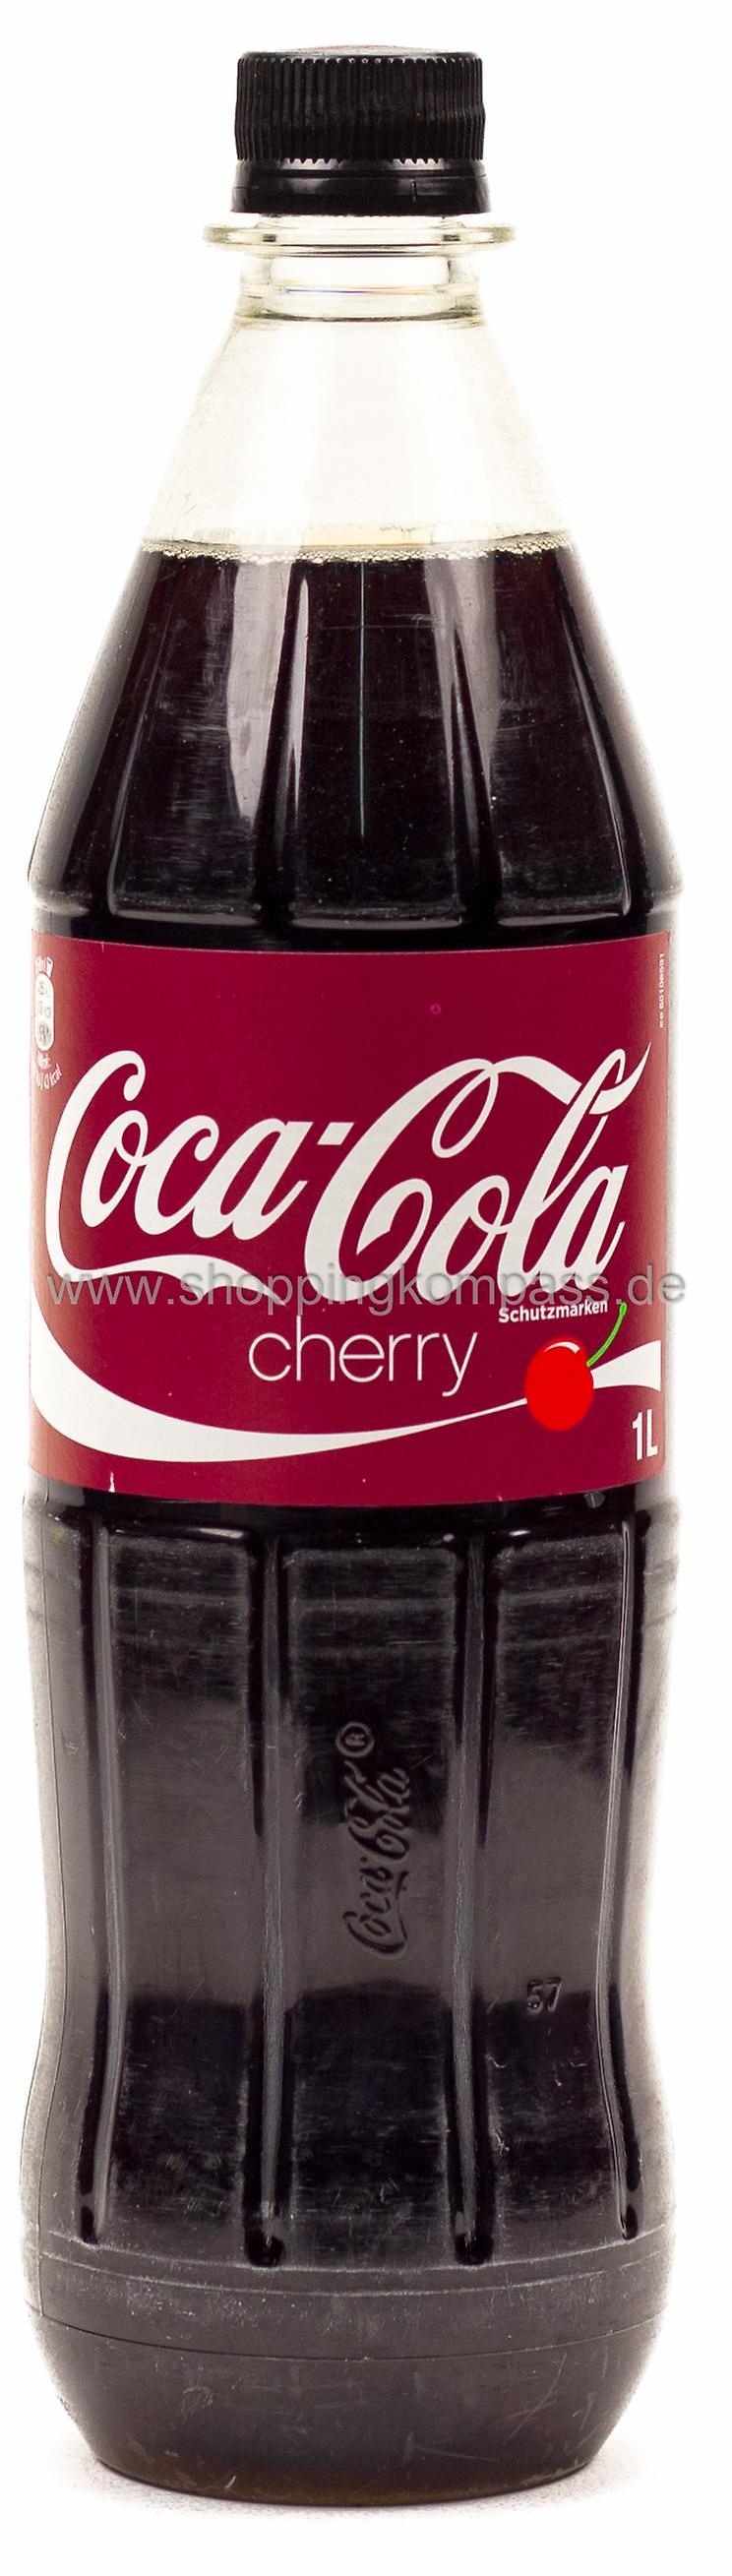 cola colamixgetr nke coca cola cherry 1 l pet mw ihr zuverl ssiger lieferservice. Black Bedroom Furniture Sets. Home Design Ideas